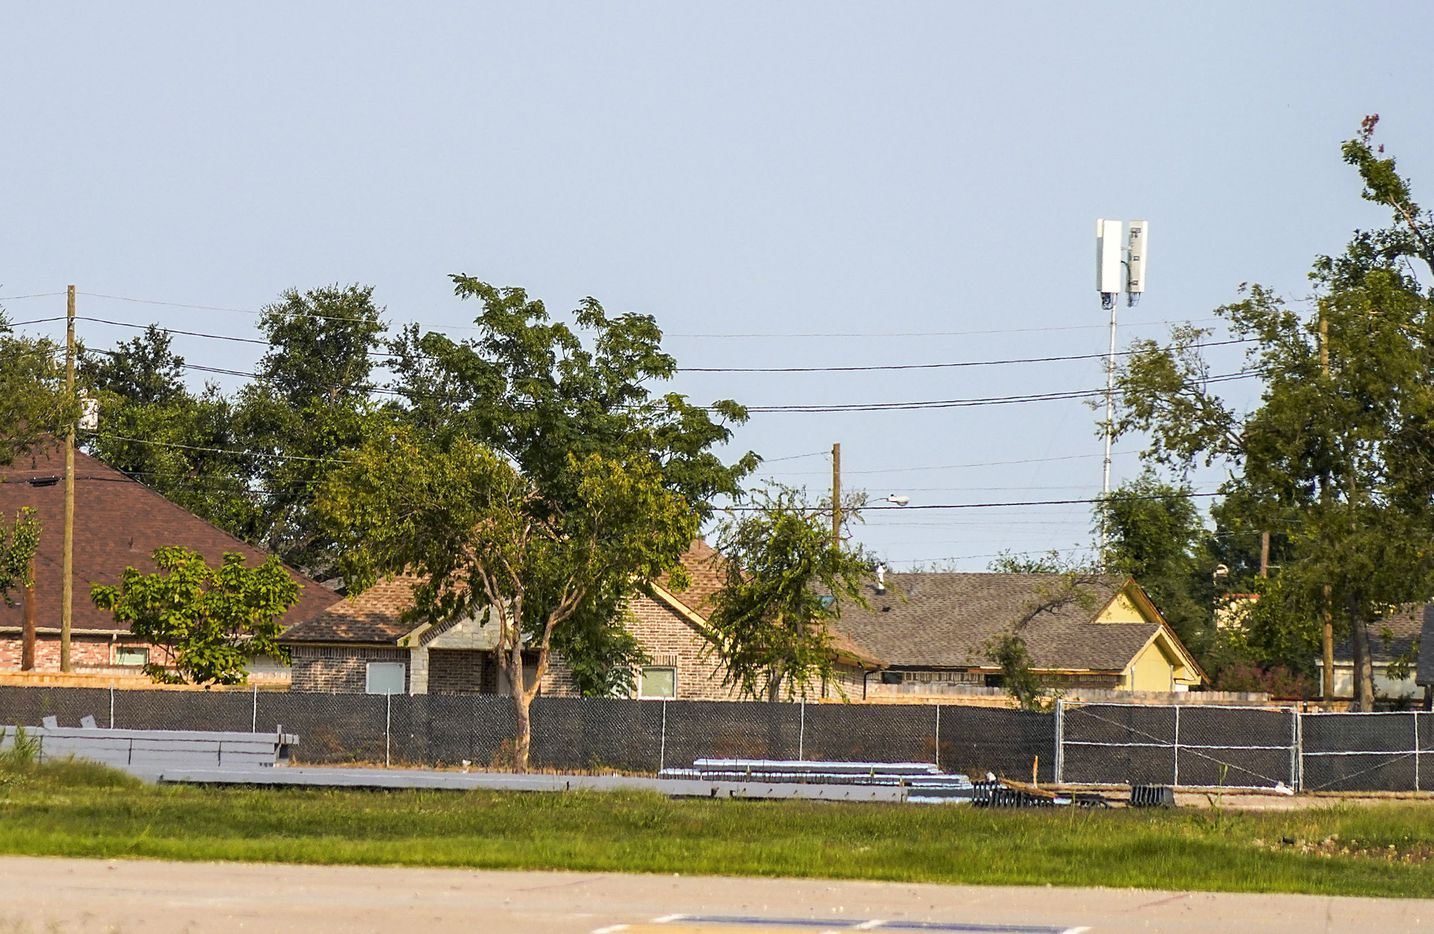 The former site of Cary Middle School on Friday, Oct. 2, 2020, in Dallas. (Smiley N. Pool/The Dallas Morning News)